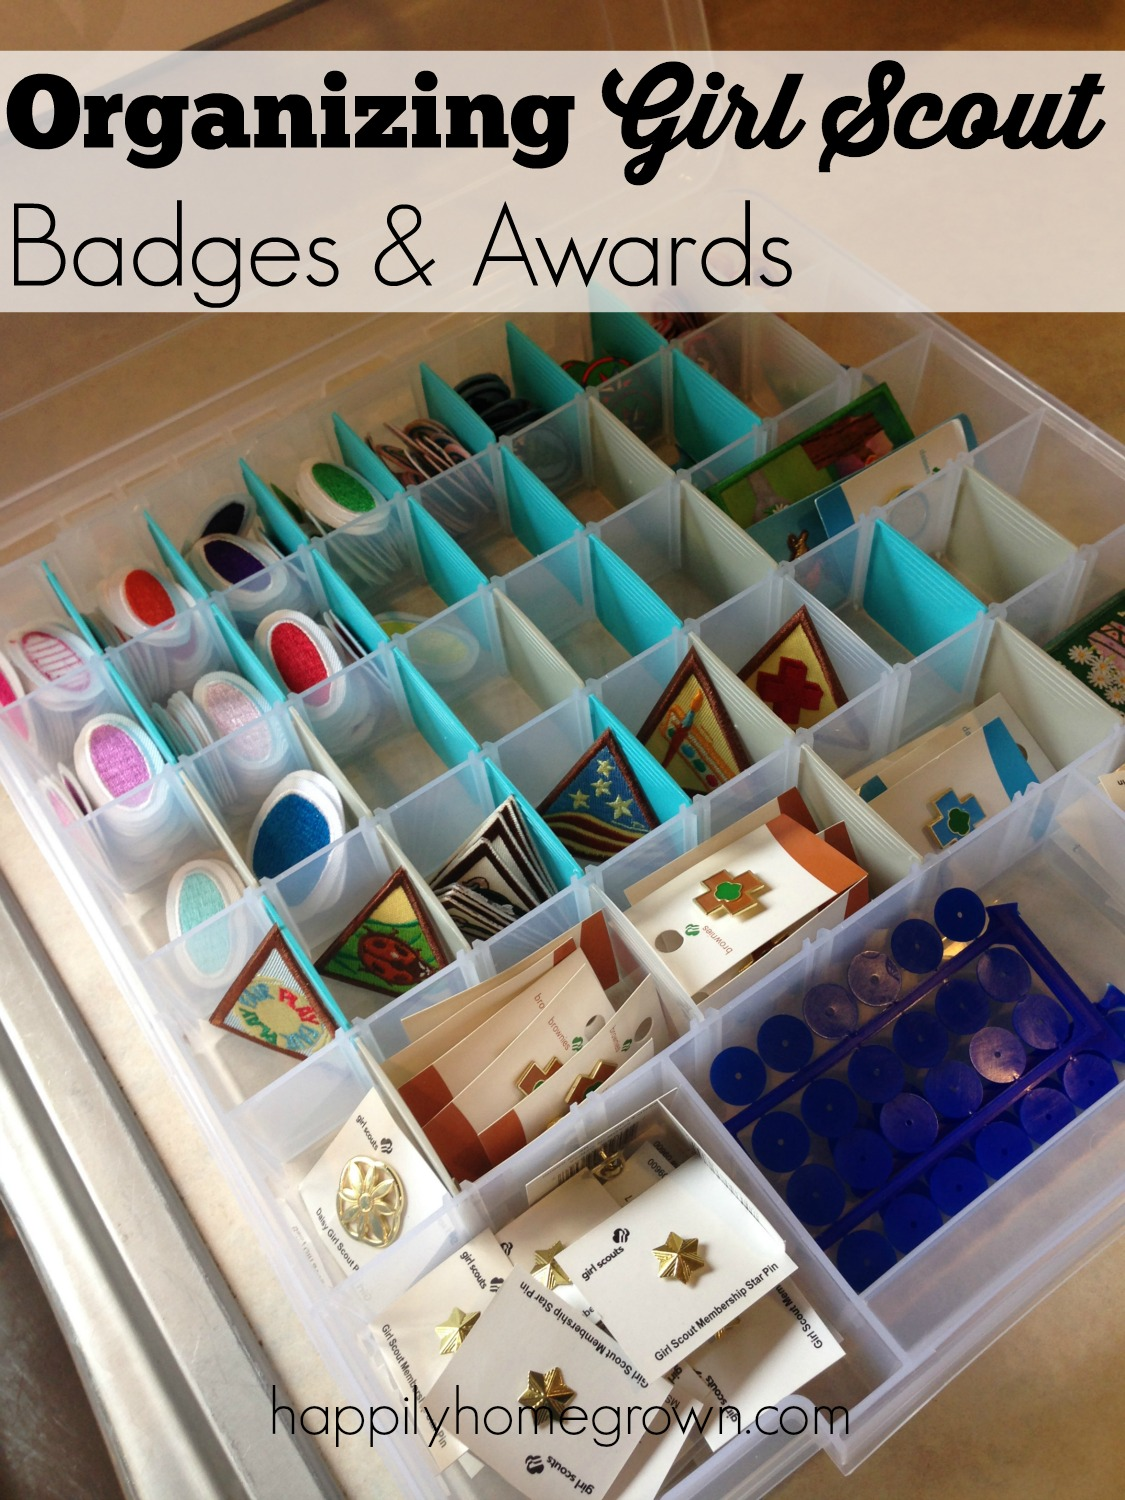 Organizing Girl Scout Badges & Awards